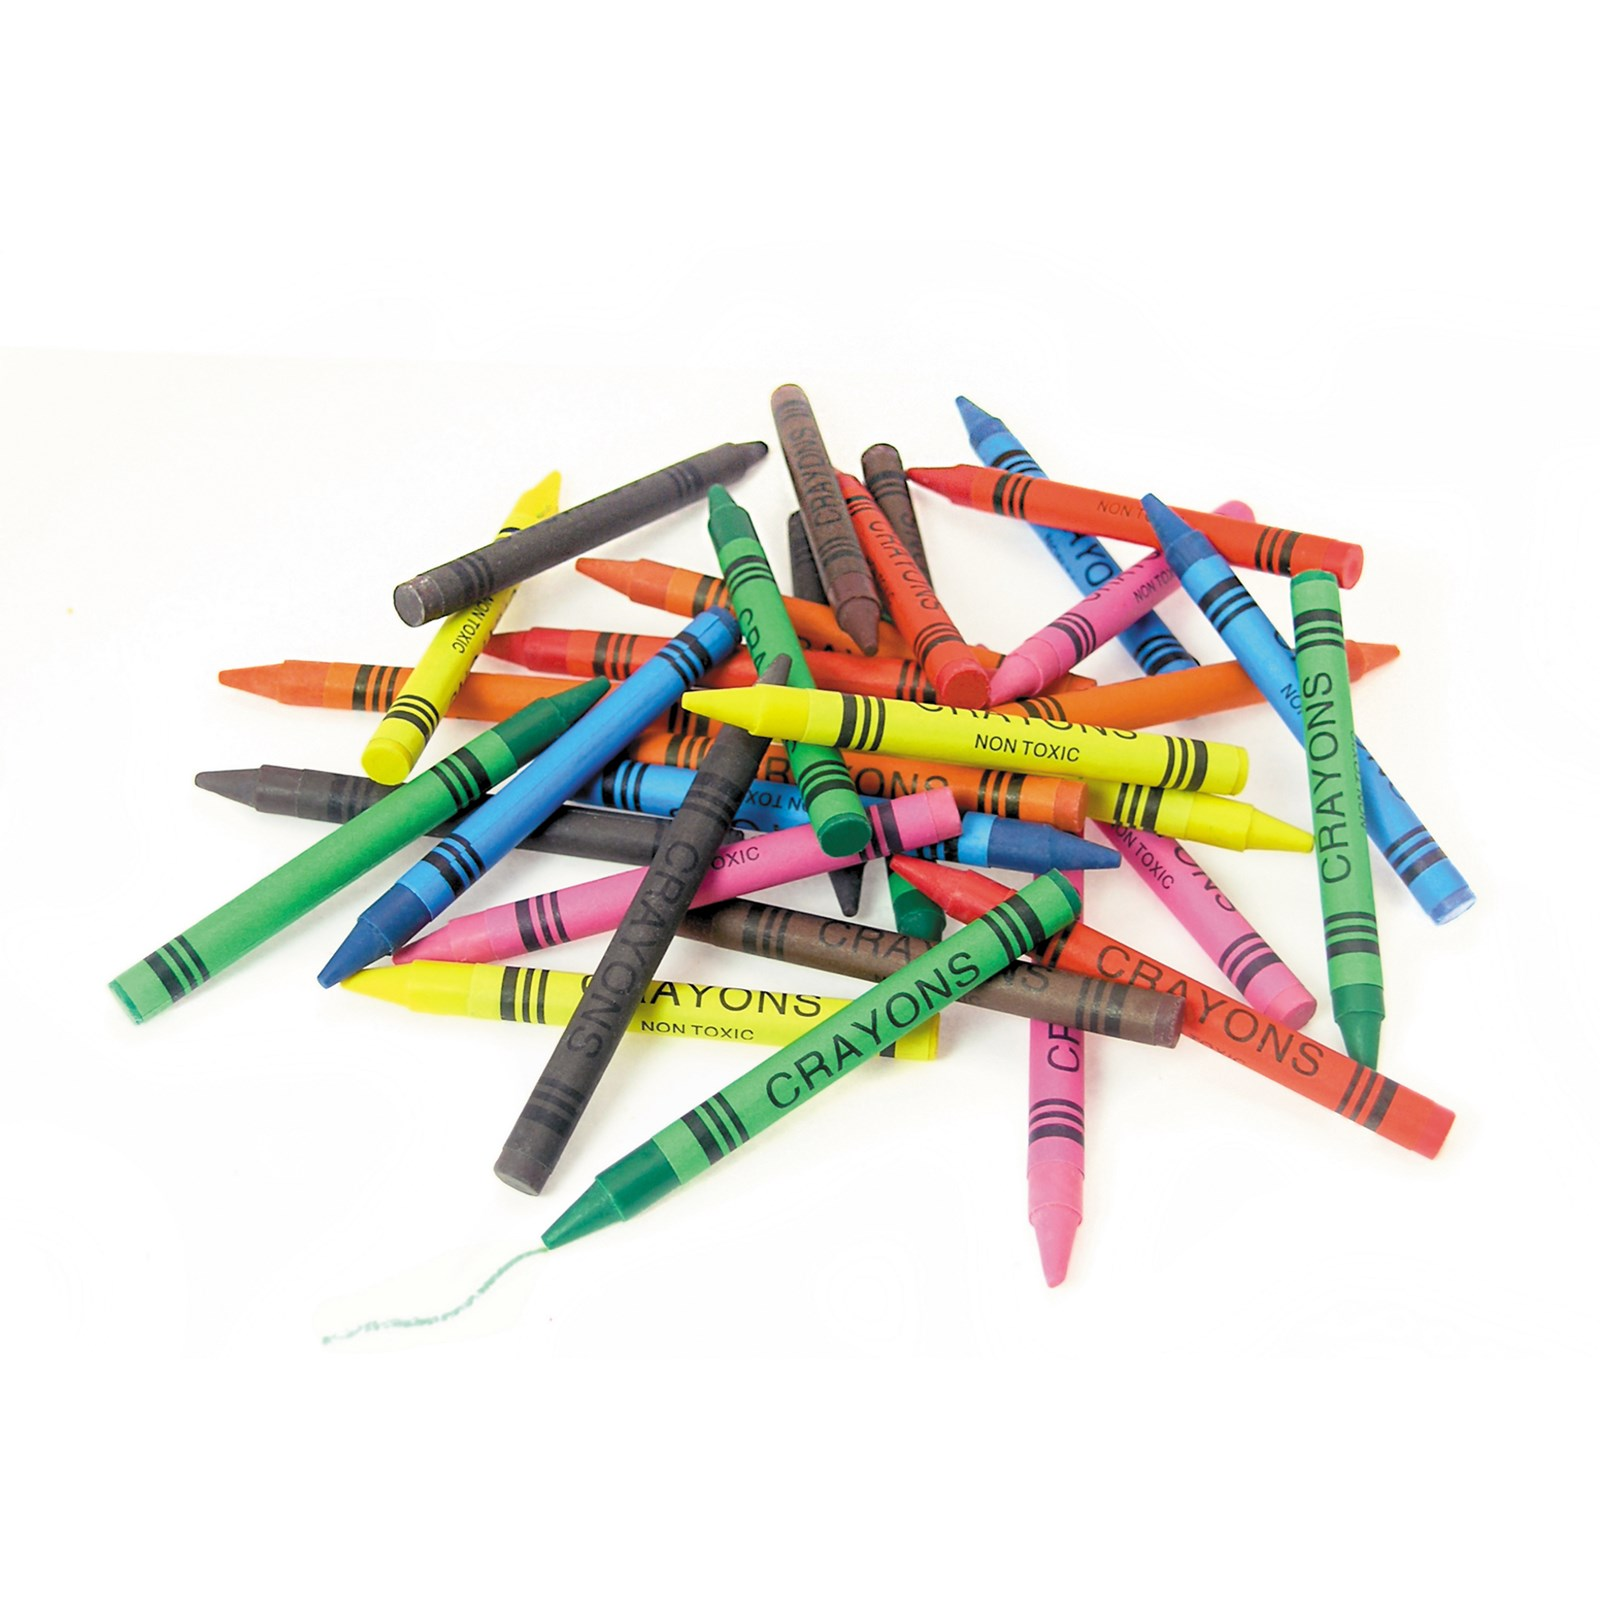 Classmates Value Crayons Pack Of 24